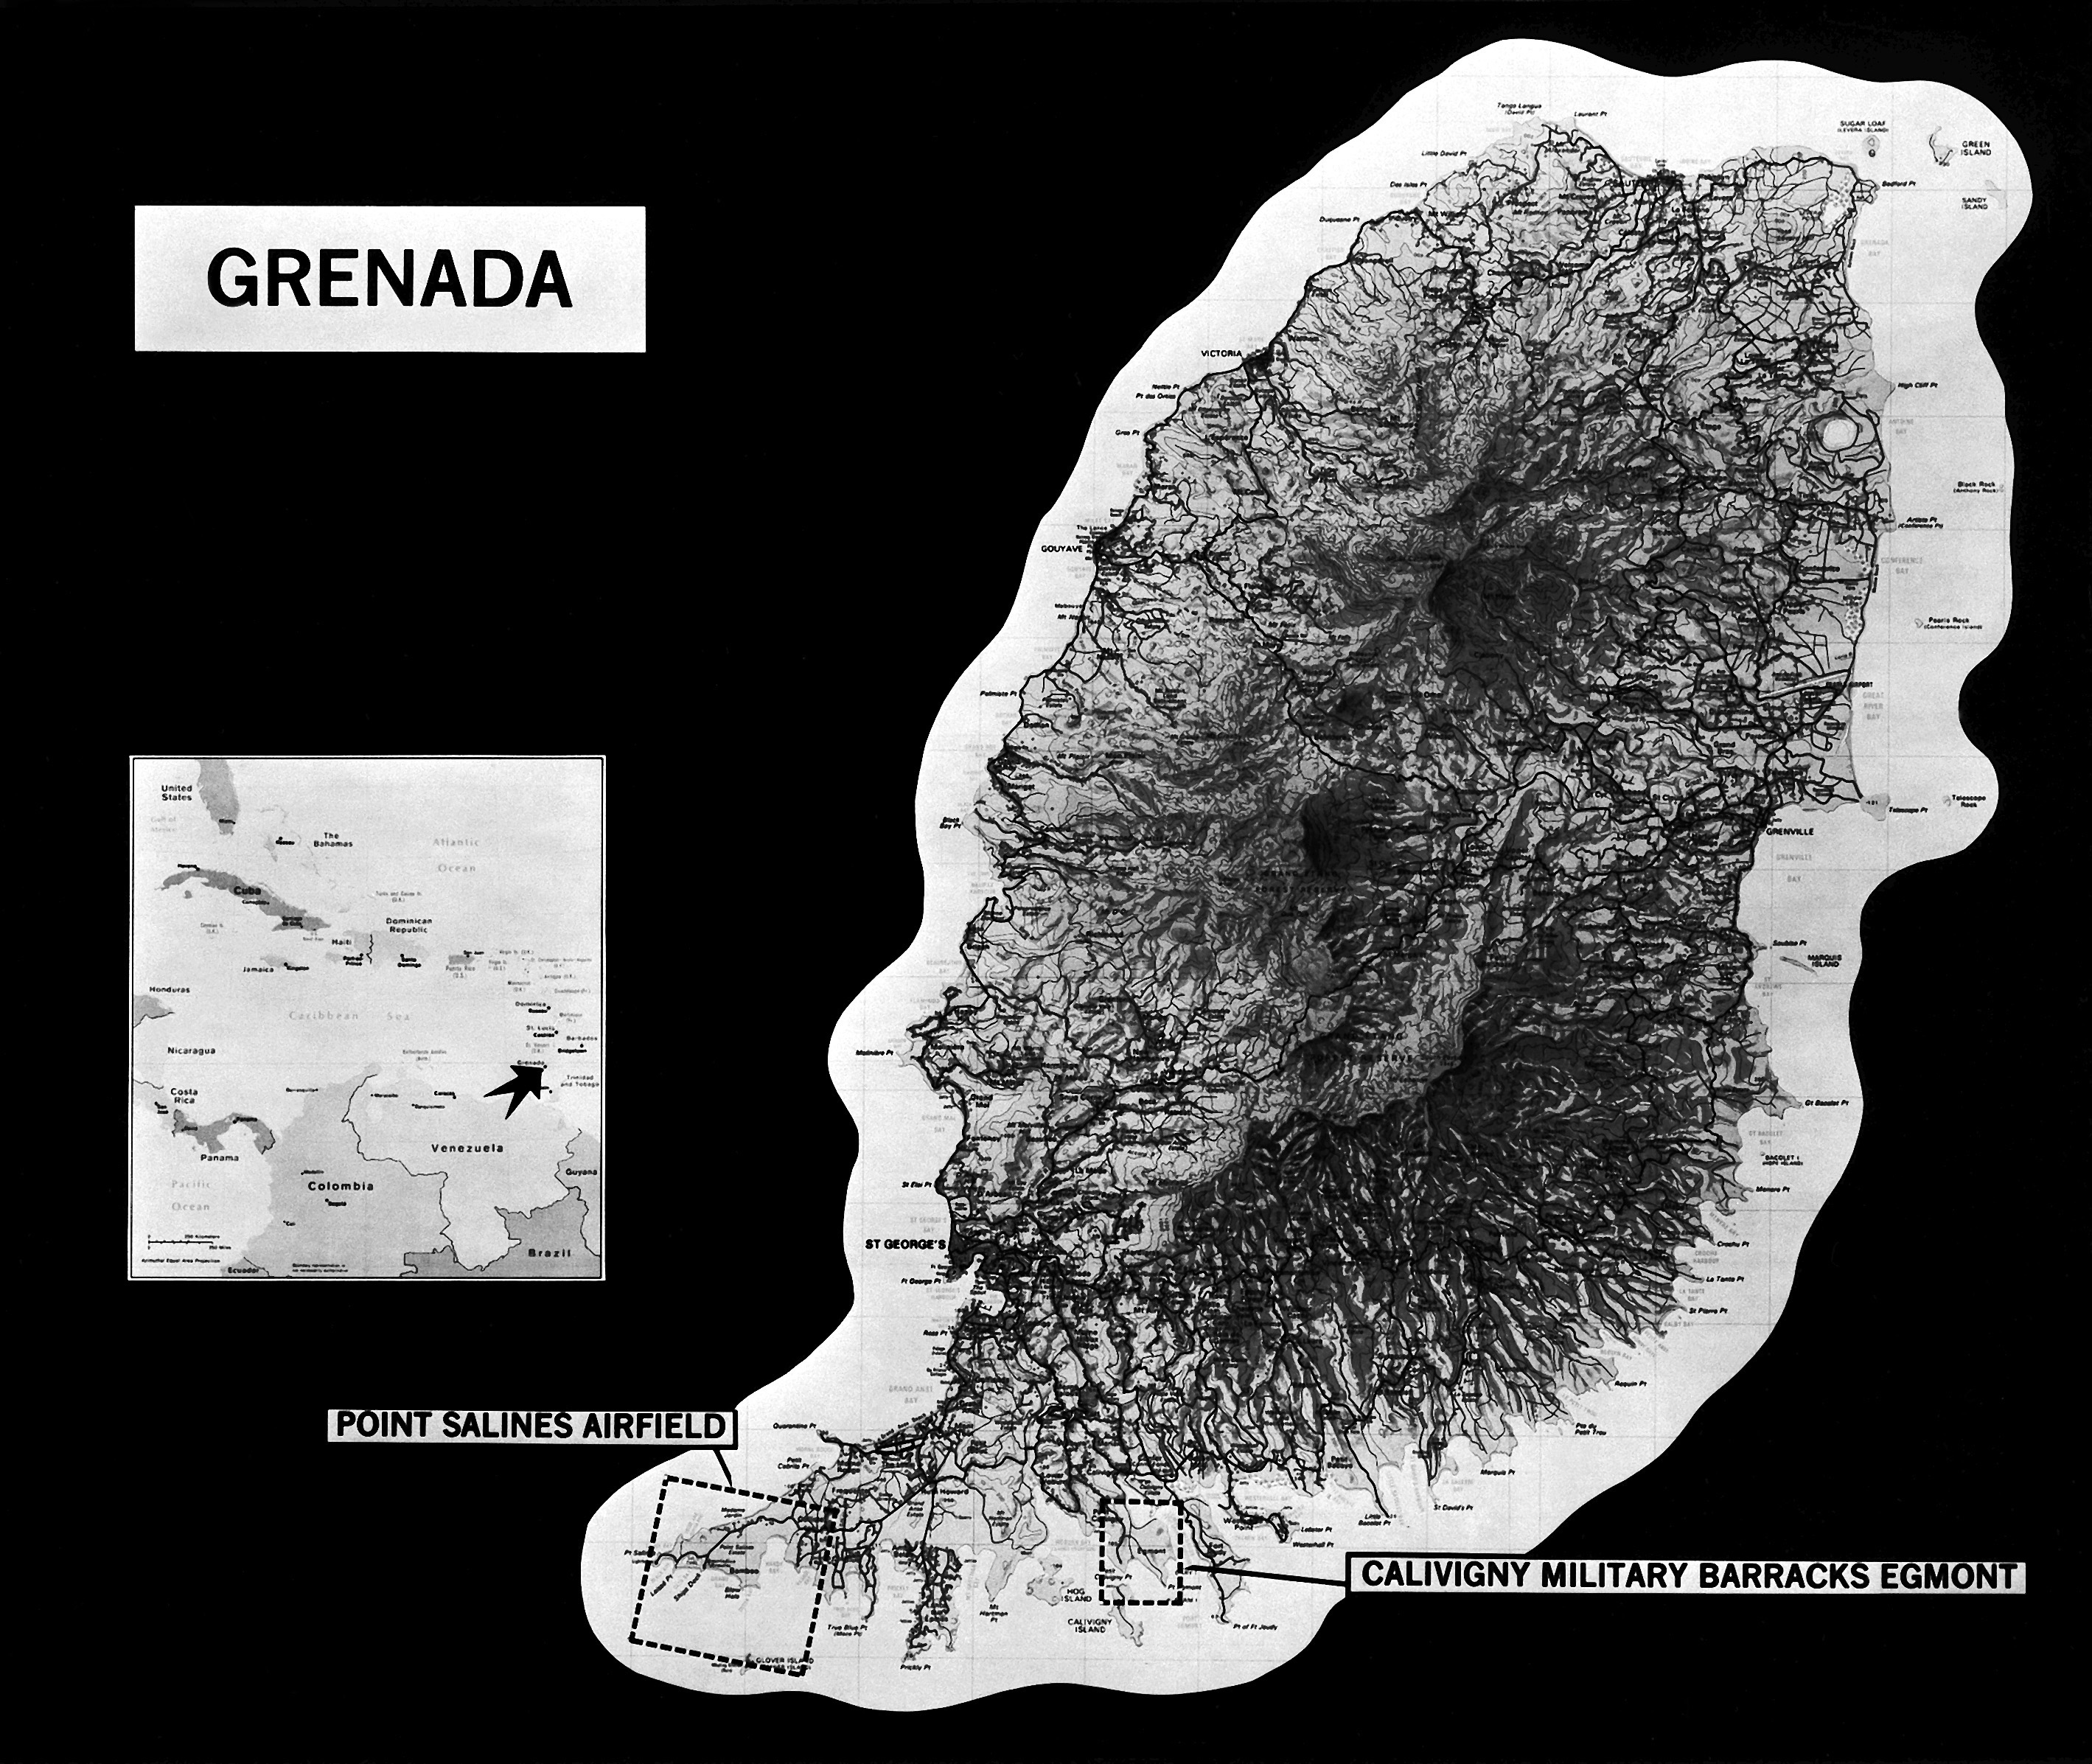 Map of Grenada showing the location of Point Salines Airfield and Calivigny Military Barracks at Egmont